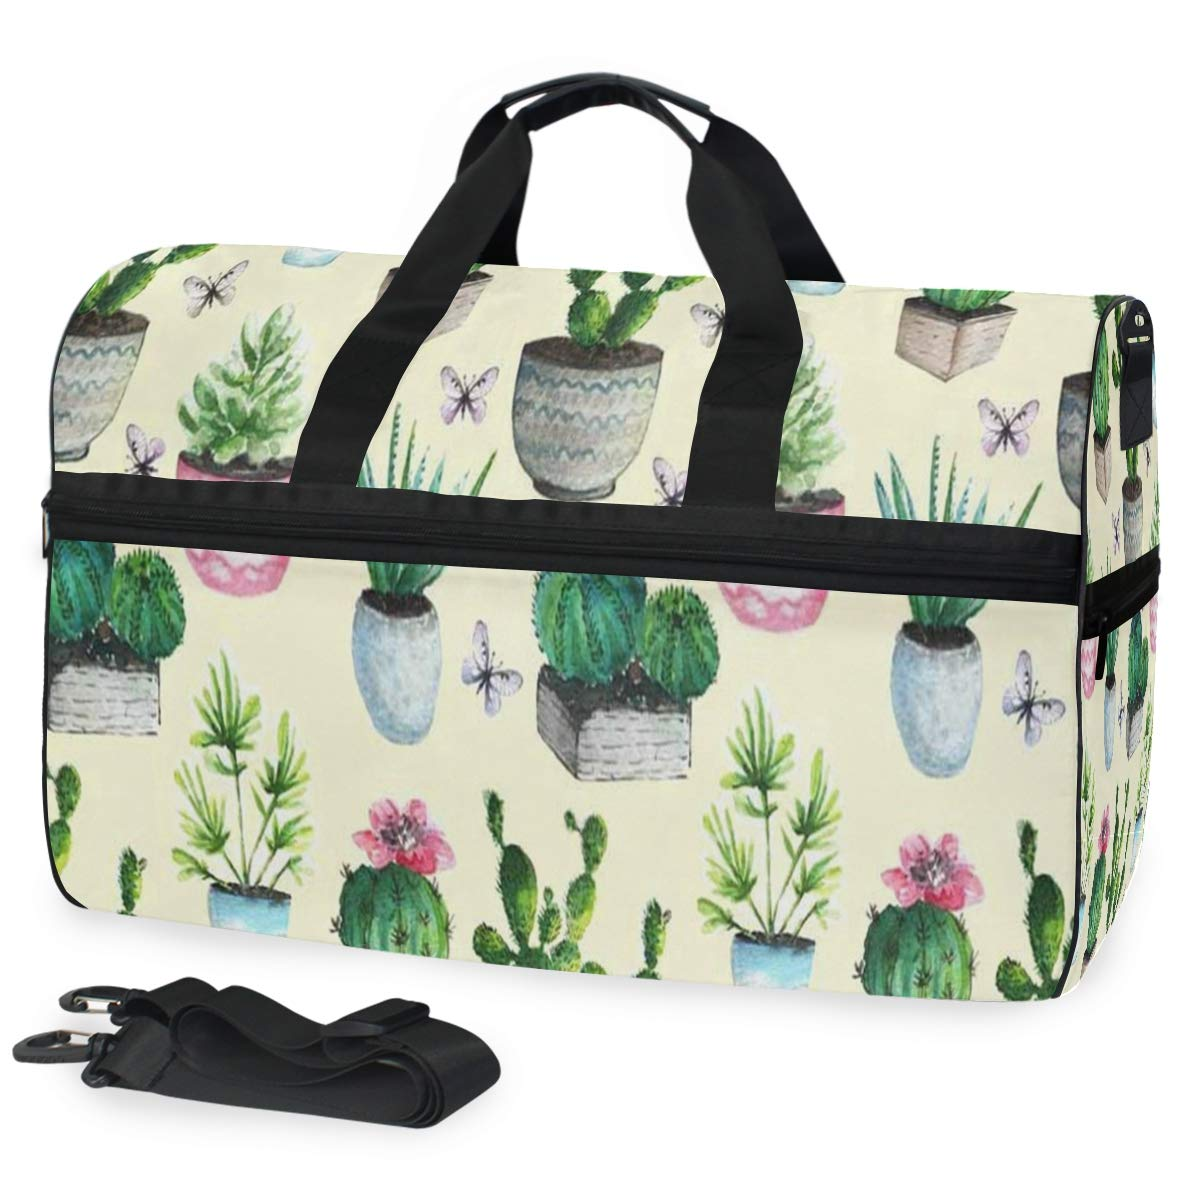 Travel Tote Luggage Weekender Duffle Bag Cactus Succulent Boho Style Large Canvas shoulder bag with Shoe Compartment